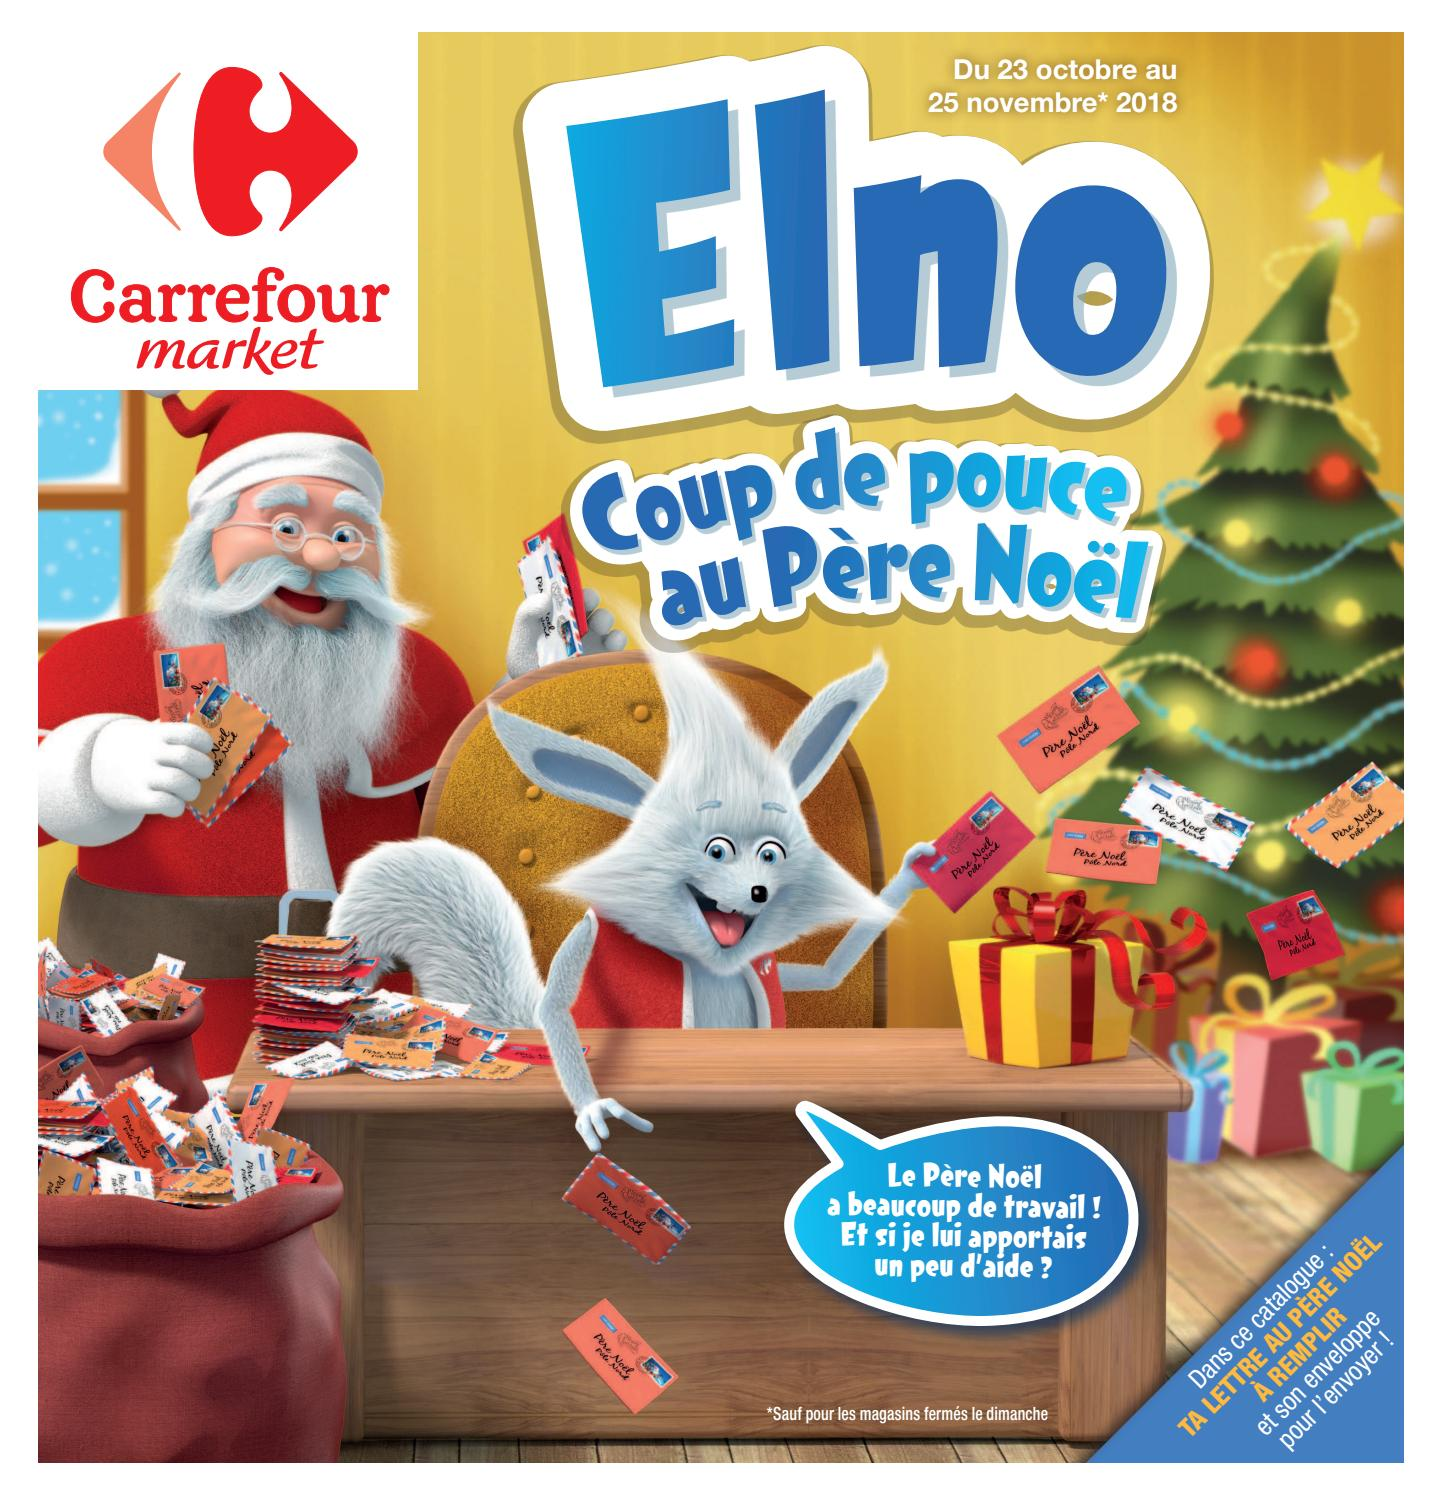 a5cda02978bc Catalogue des jouets Noël 2018 Carrefour Market by bonsplans - issuu